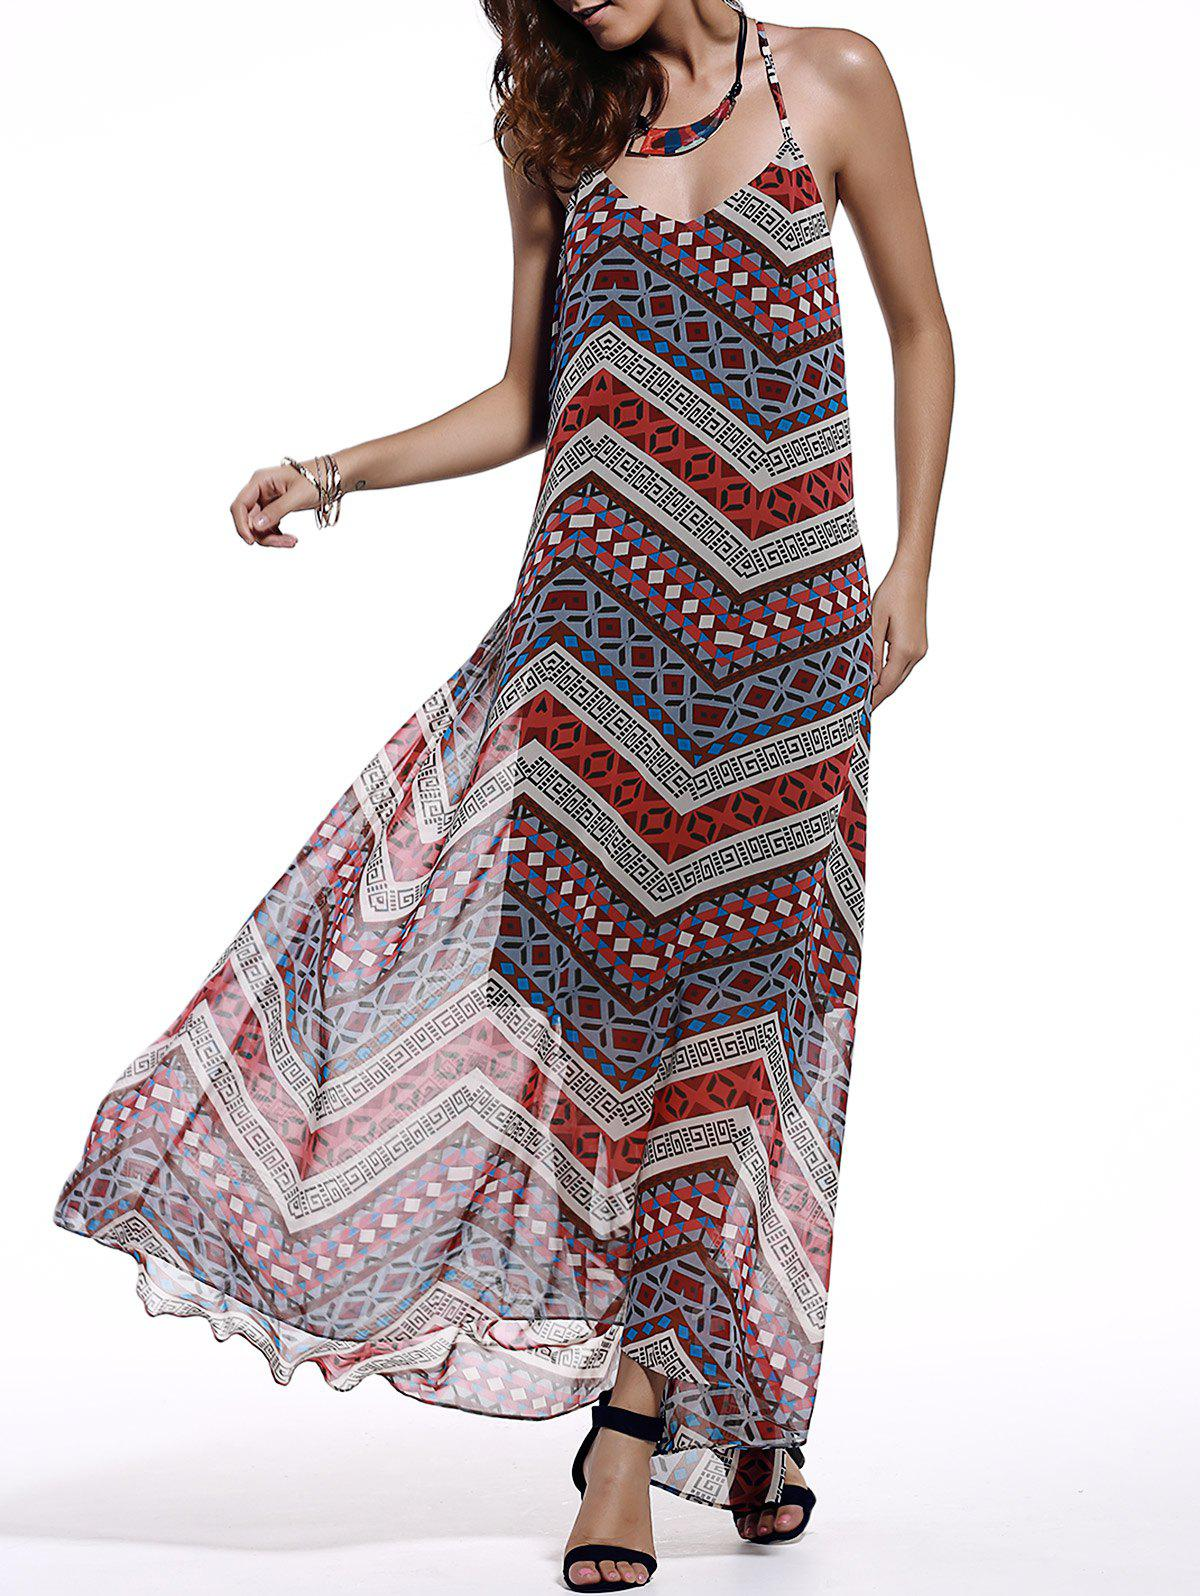 Chic Spaghetti Strap Sleeveless Open Back Printed Dress For Women - COLORMIX L